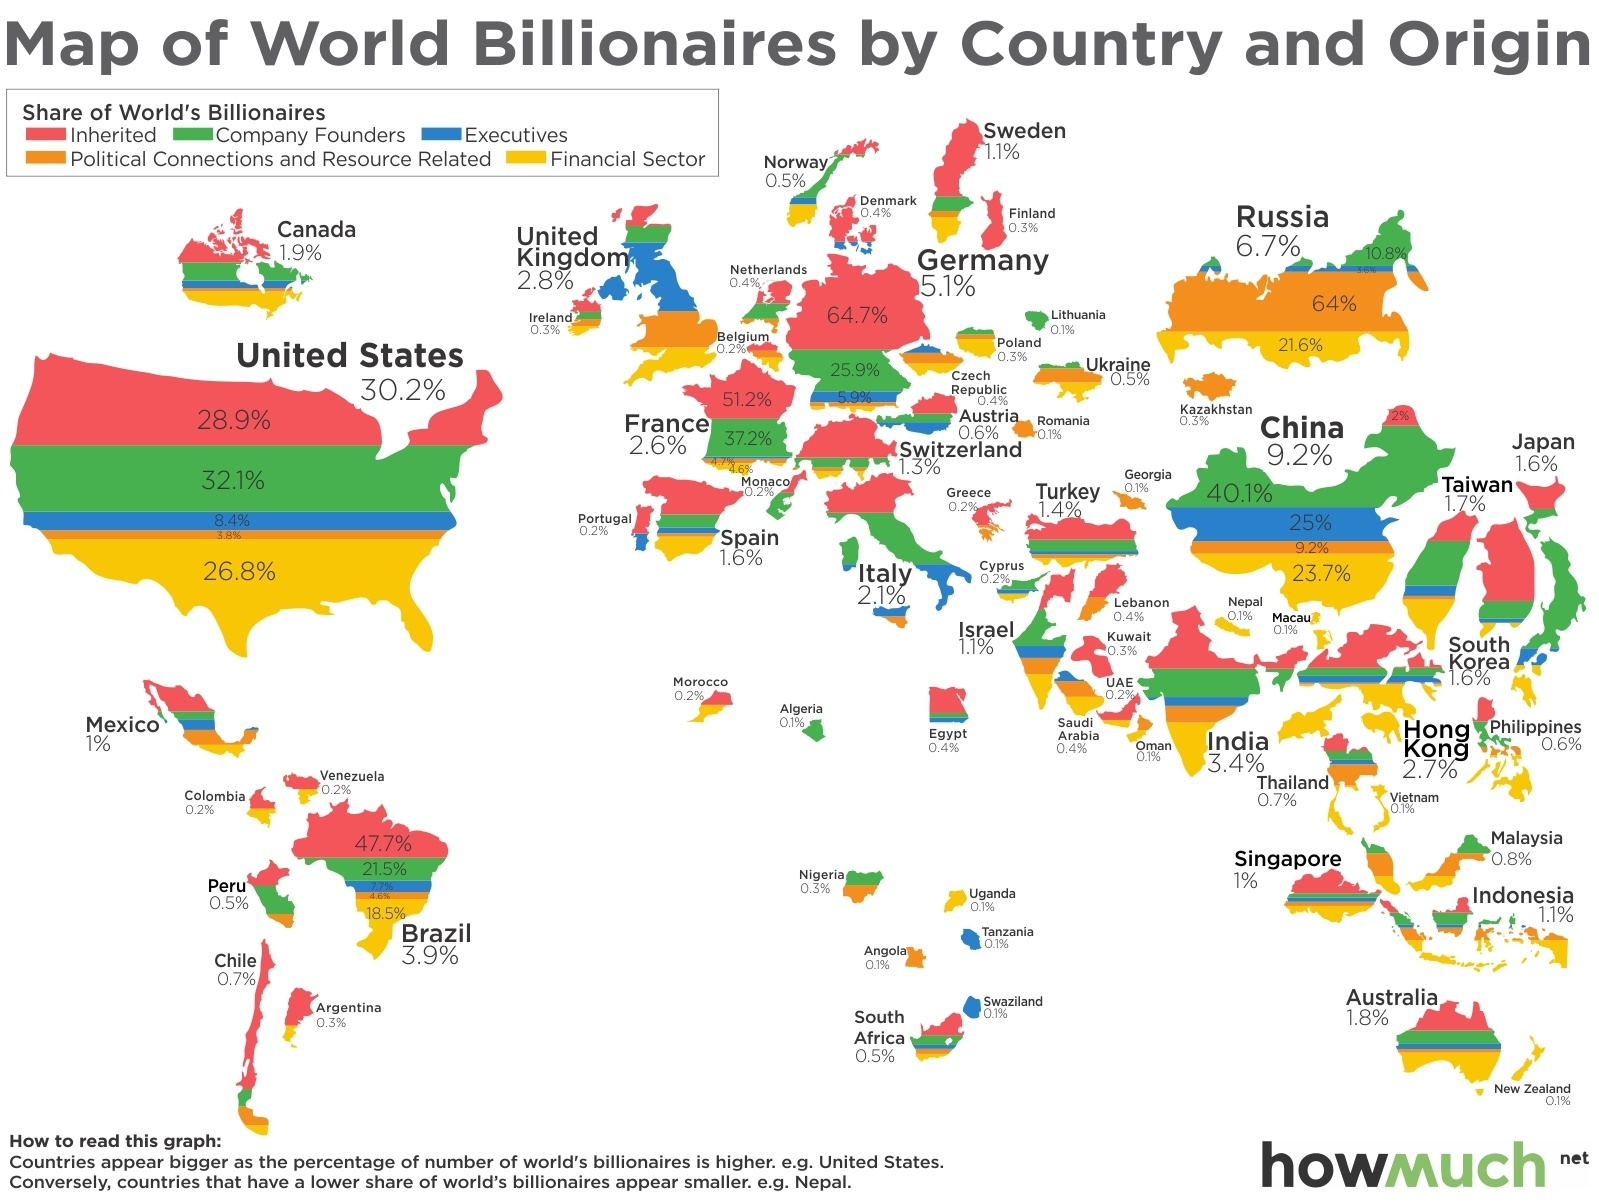 Map of world billionaires by country & origin